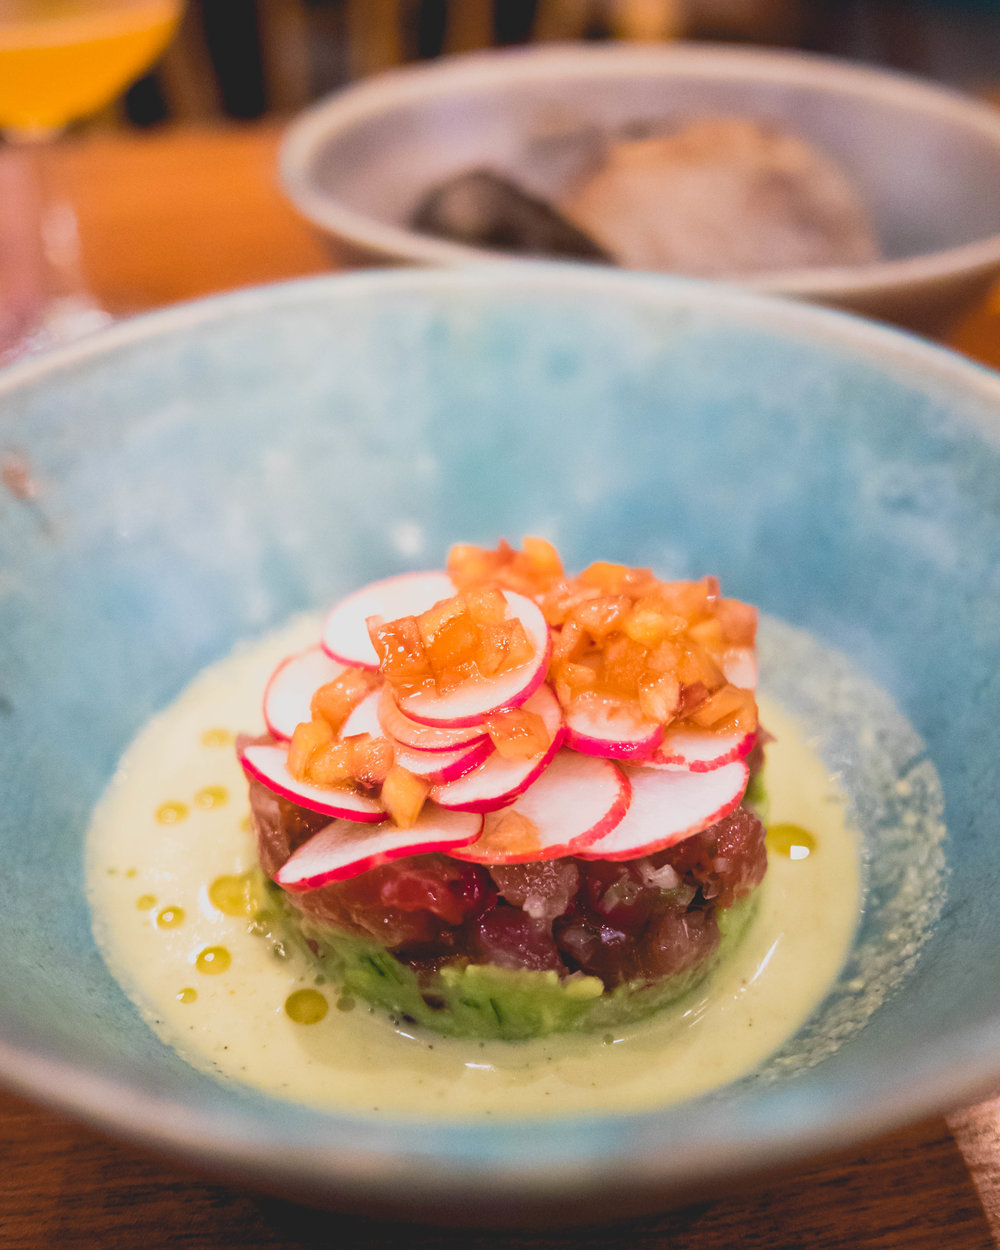 tuna tartare , jalapeno emulsion, radishes, chili oil, avocado.